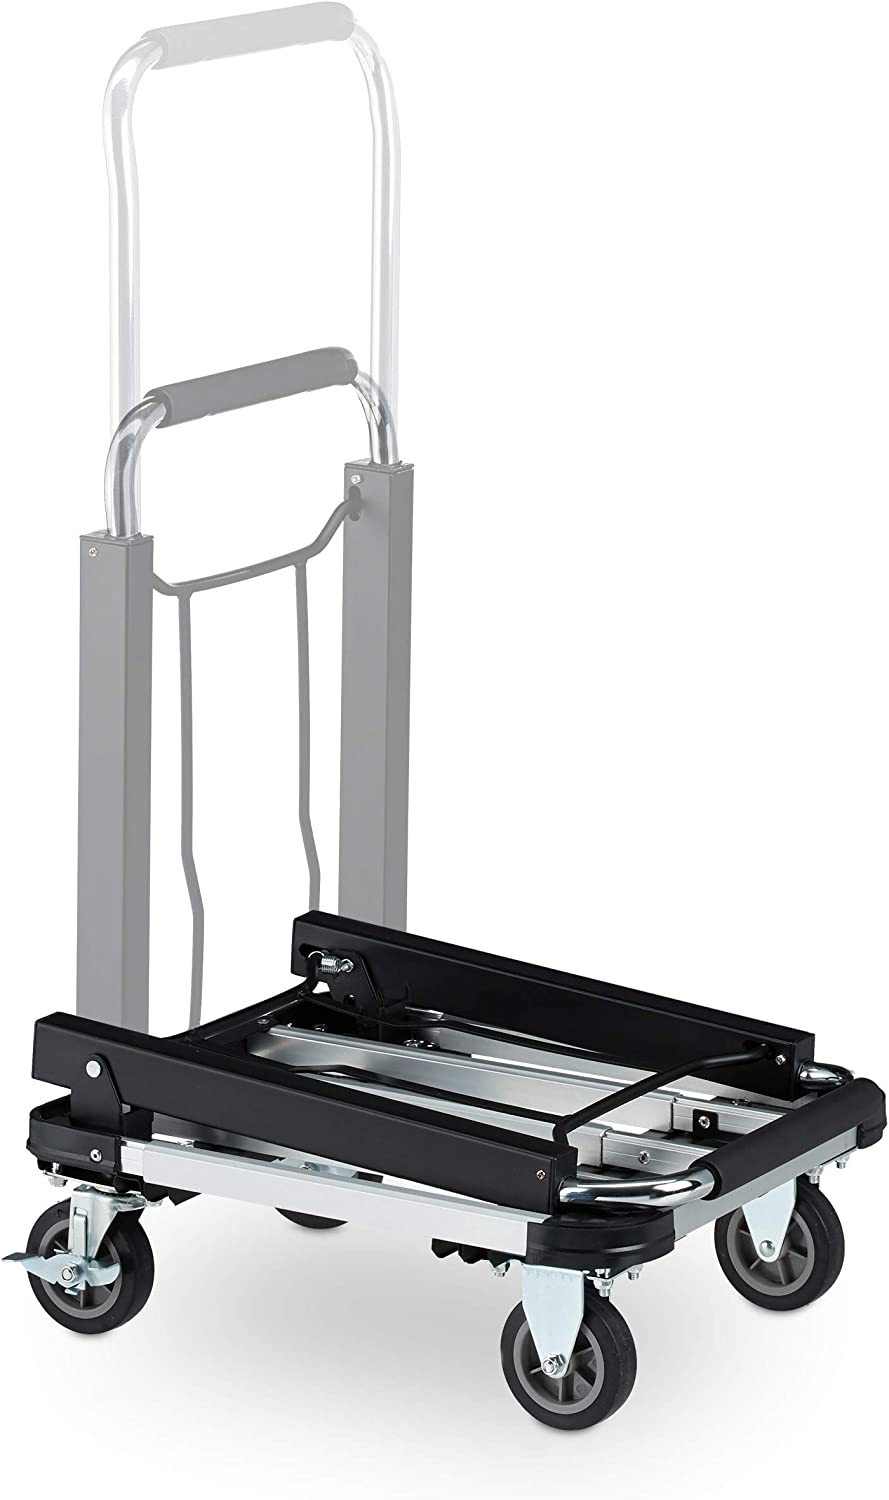 Folding Hand Trolley Pack of 1 Extendable /& Height-Adjustable Black Platform Truck Relaxdays 10029574 Wheels with Brakes Up to 100 kg